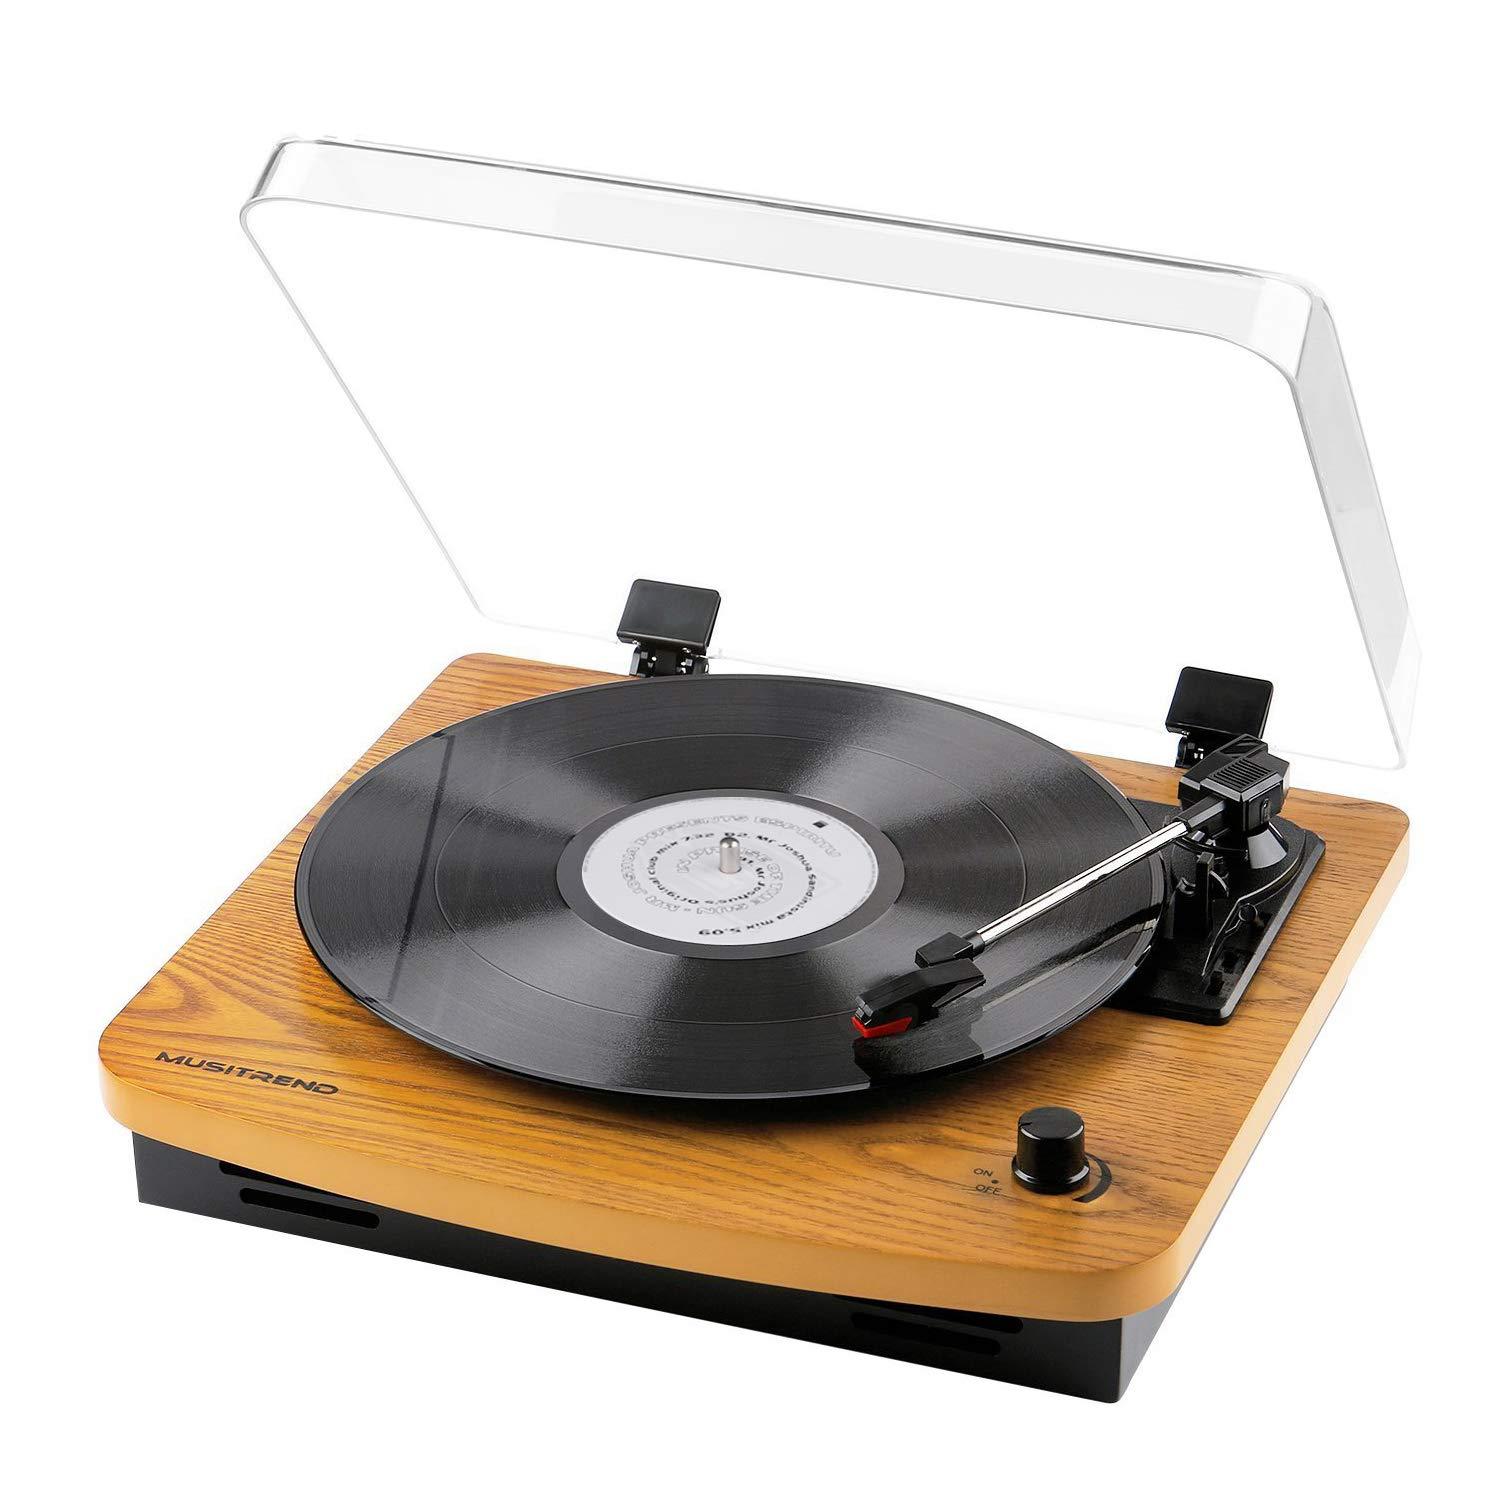 Musitrend Record Player 3-Speed Belt-Drive Turntable with Built-in Stereo Speakers, Vintage Style Record Player Support Vinyl-to-MP3 Recording, AUX RCA Headphone Jack (Wood)